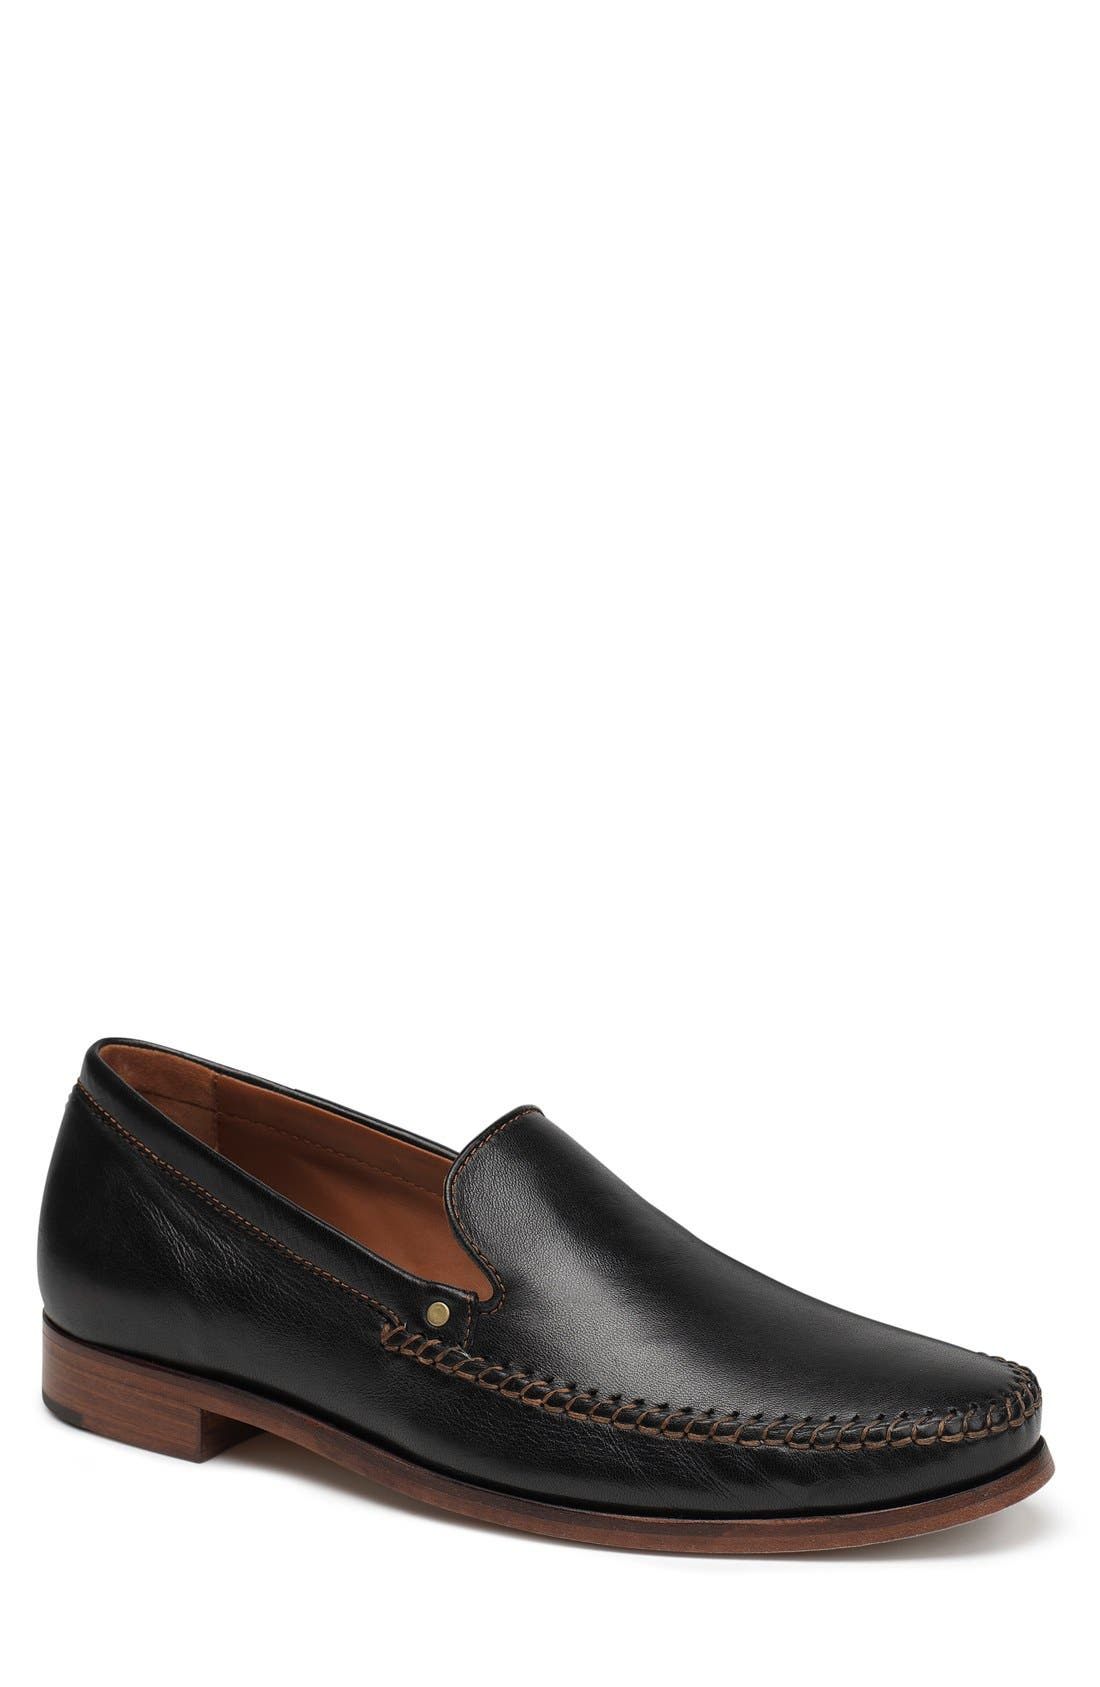 'Seth' Loafer,                         Main,                         color, BLACK SHEEPSKIN